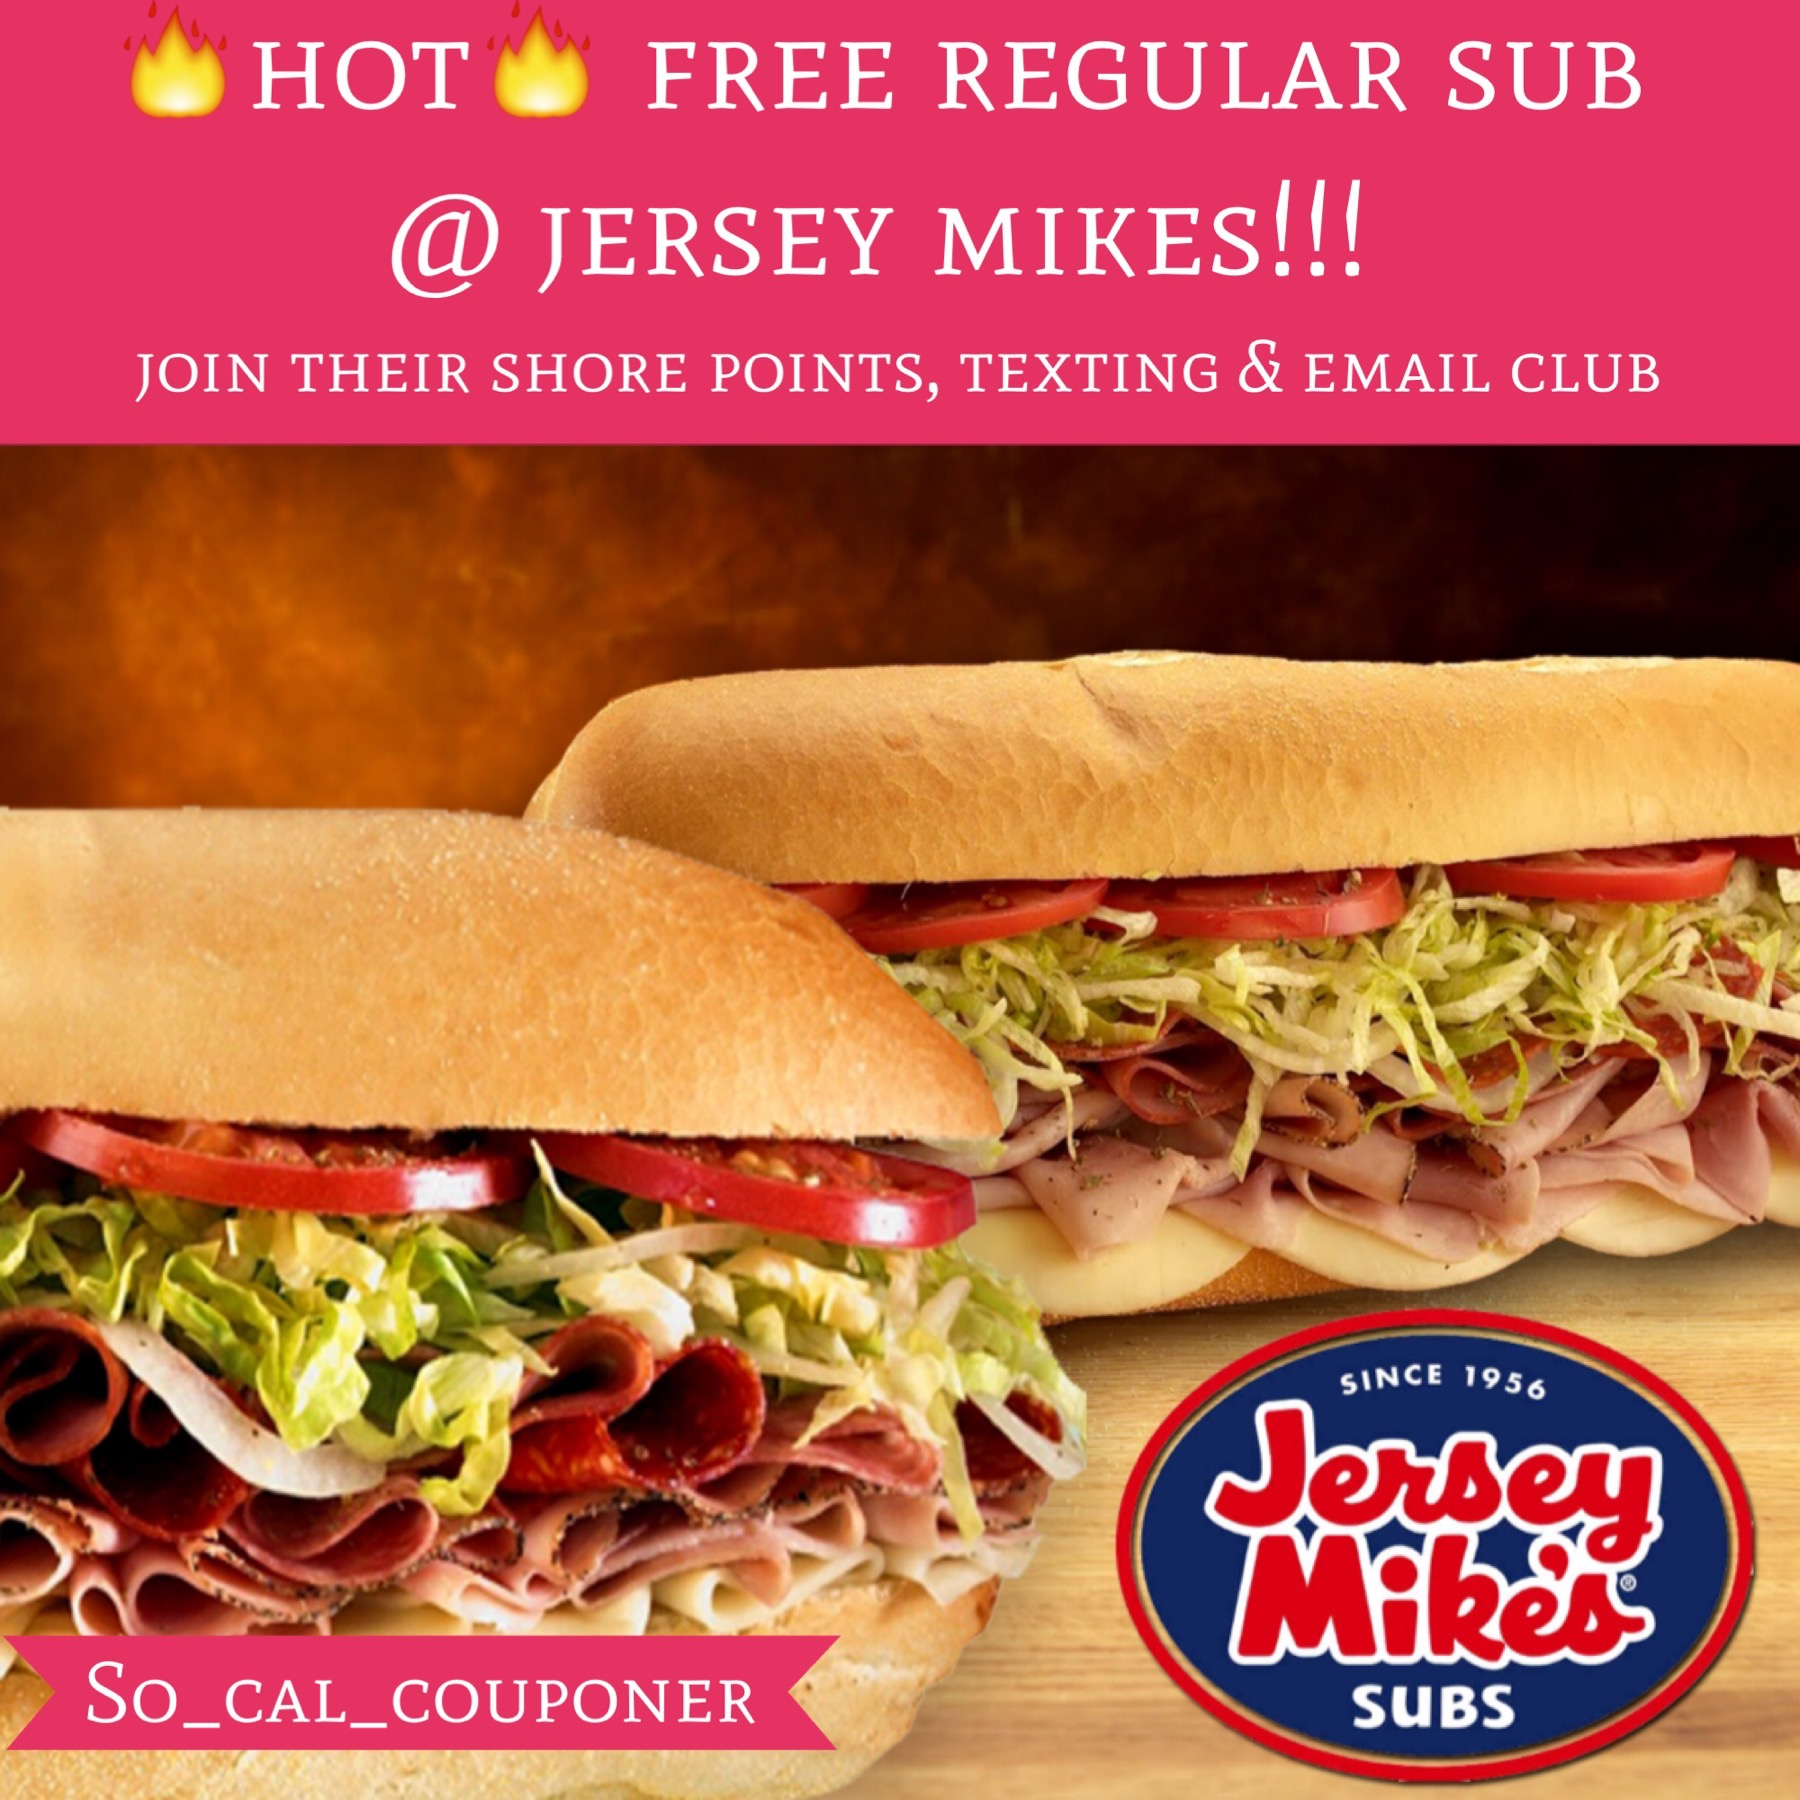 Jersey mikes deals